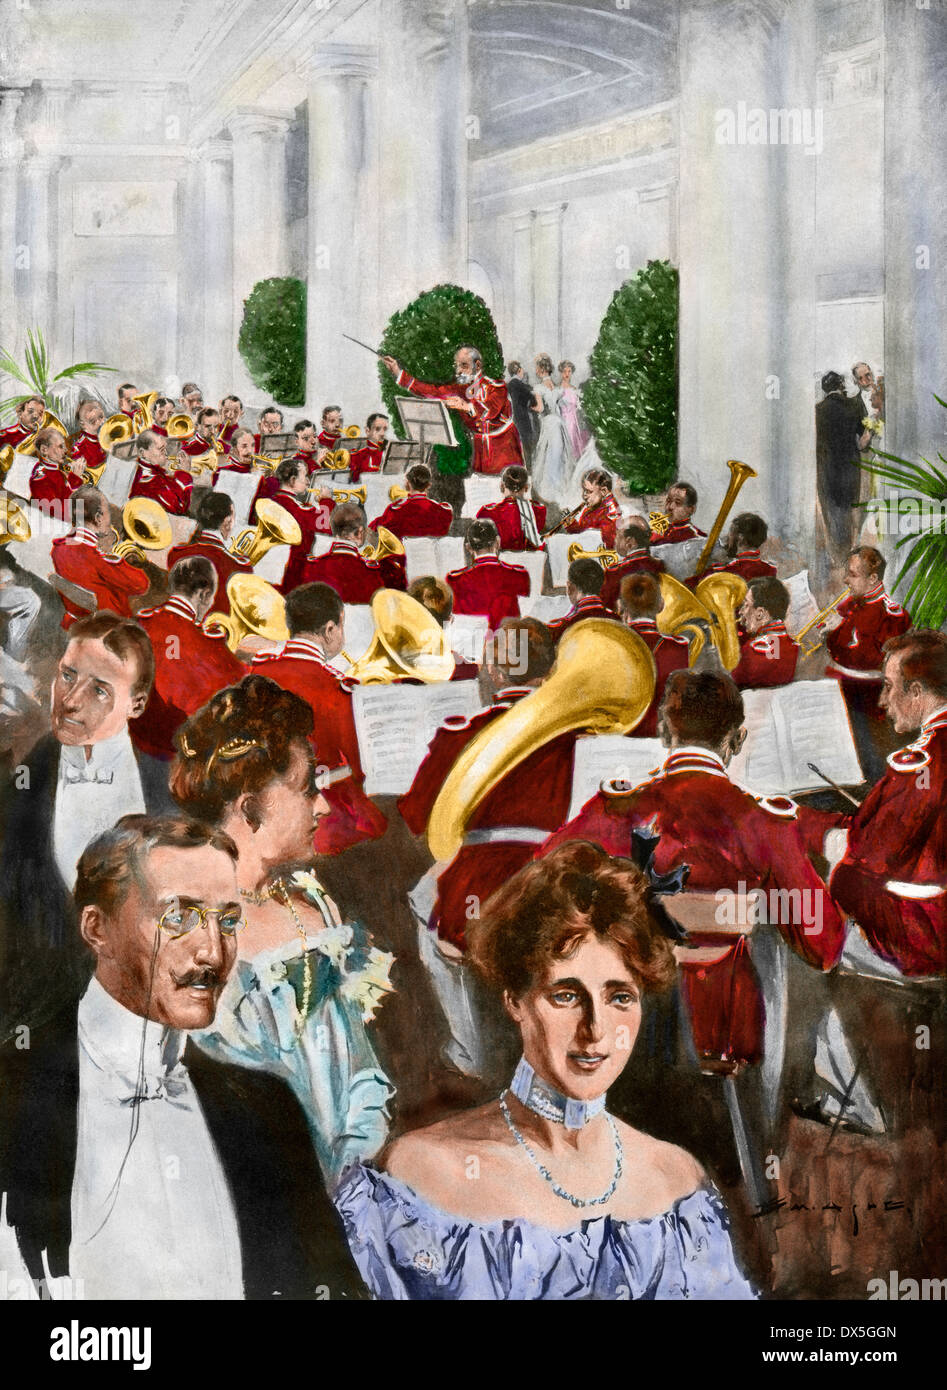 US Marine Band playing at the White House as guests proceed to meet President Theodore Roosevelt, 1903. Hand-colored - Stock Image